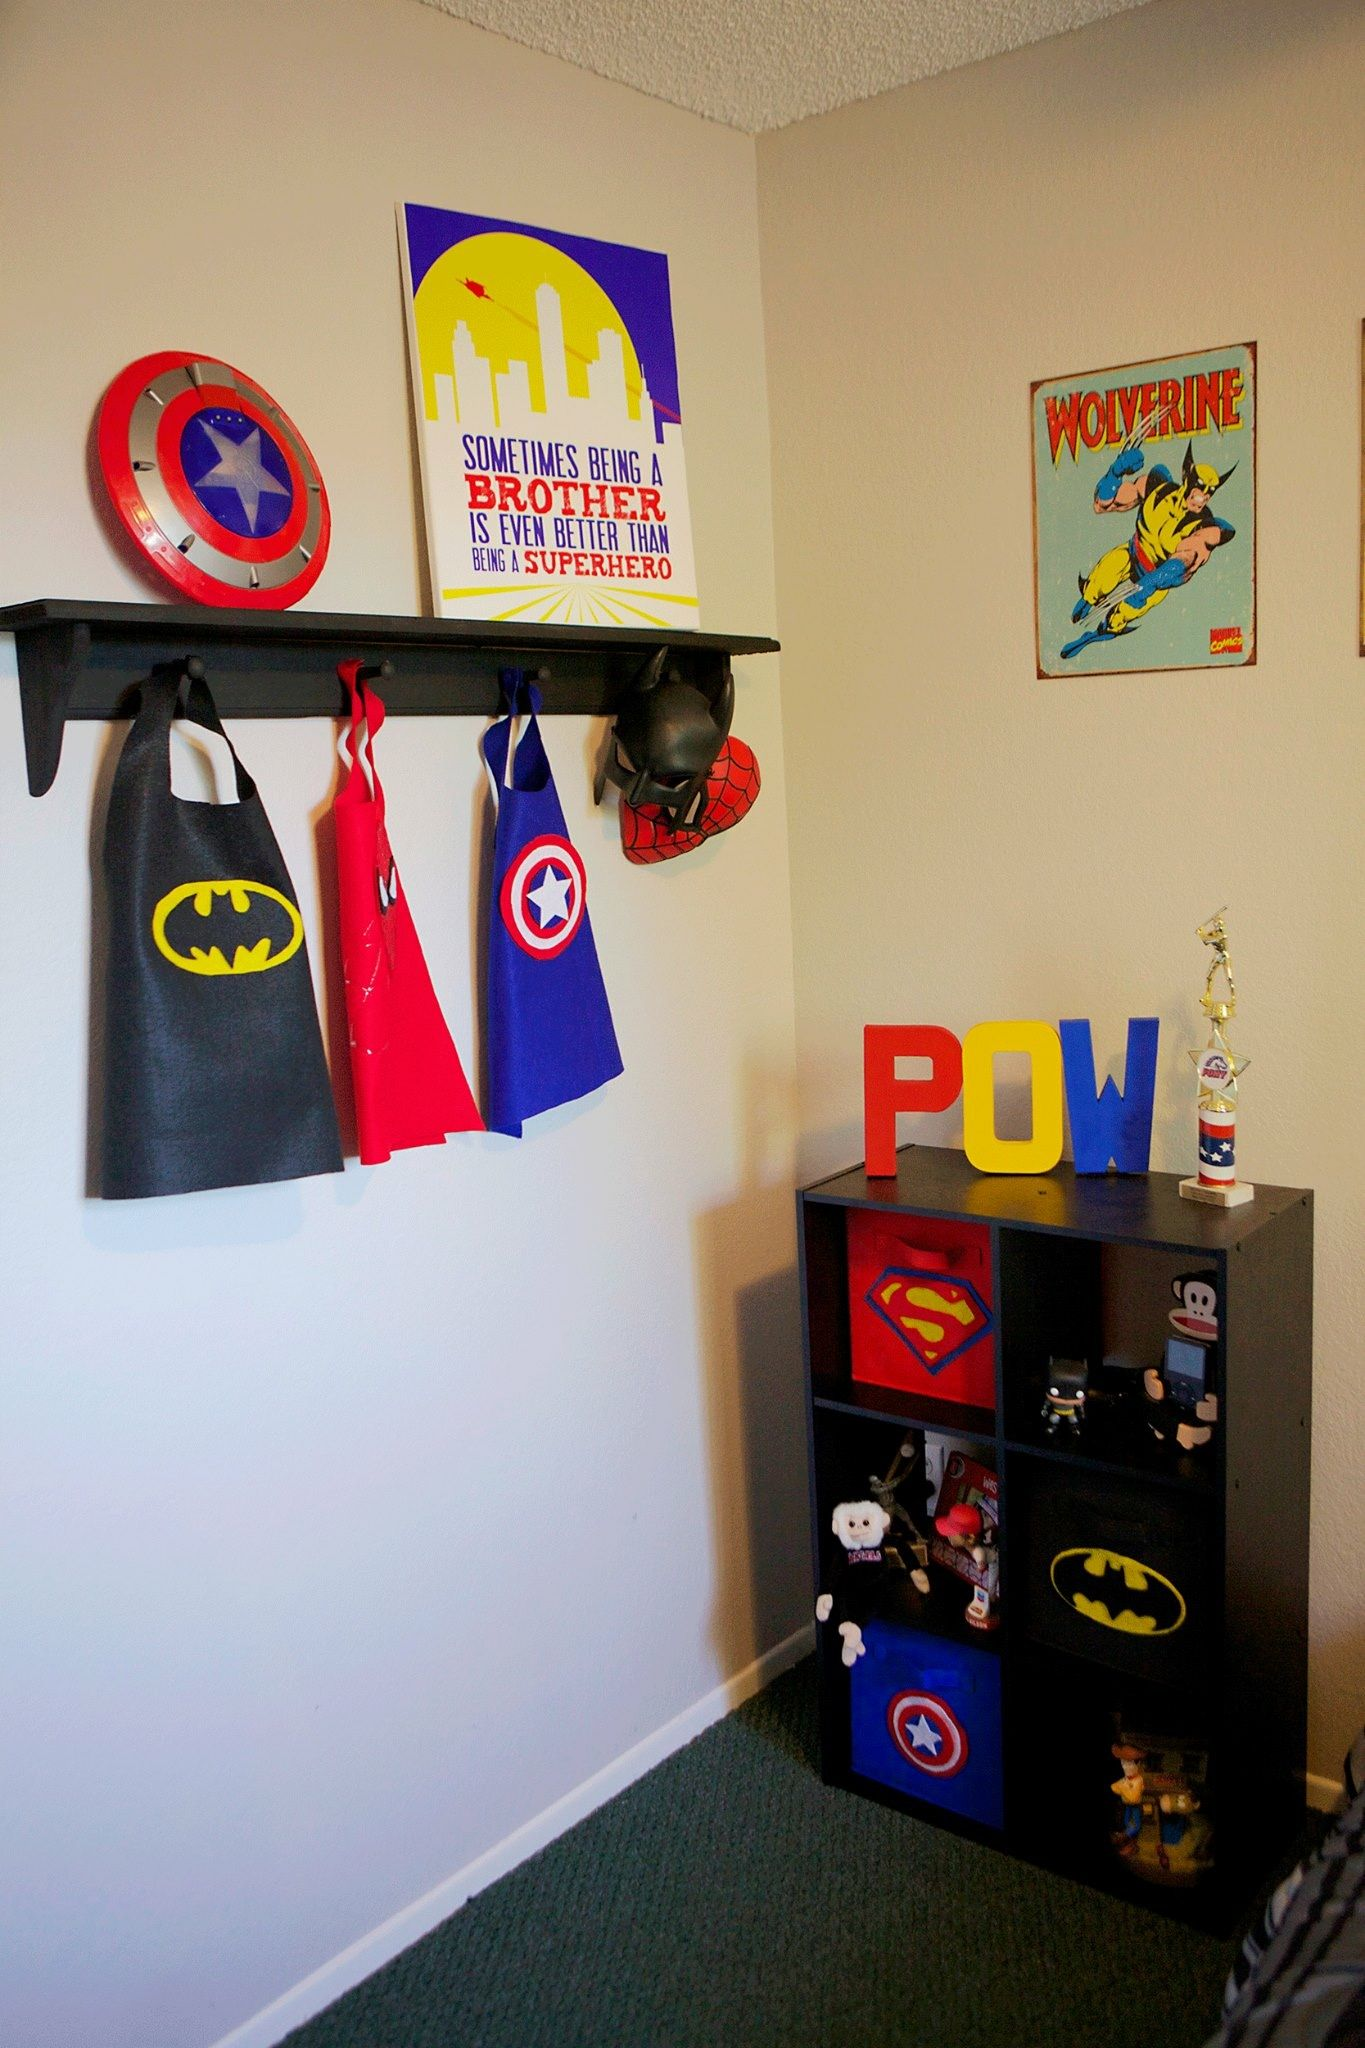 Pin by amy lefler on playroom ideas pinterest chambre enfant deco chambre and chambre super - Deco chambre super heros ...